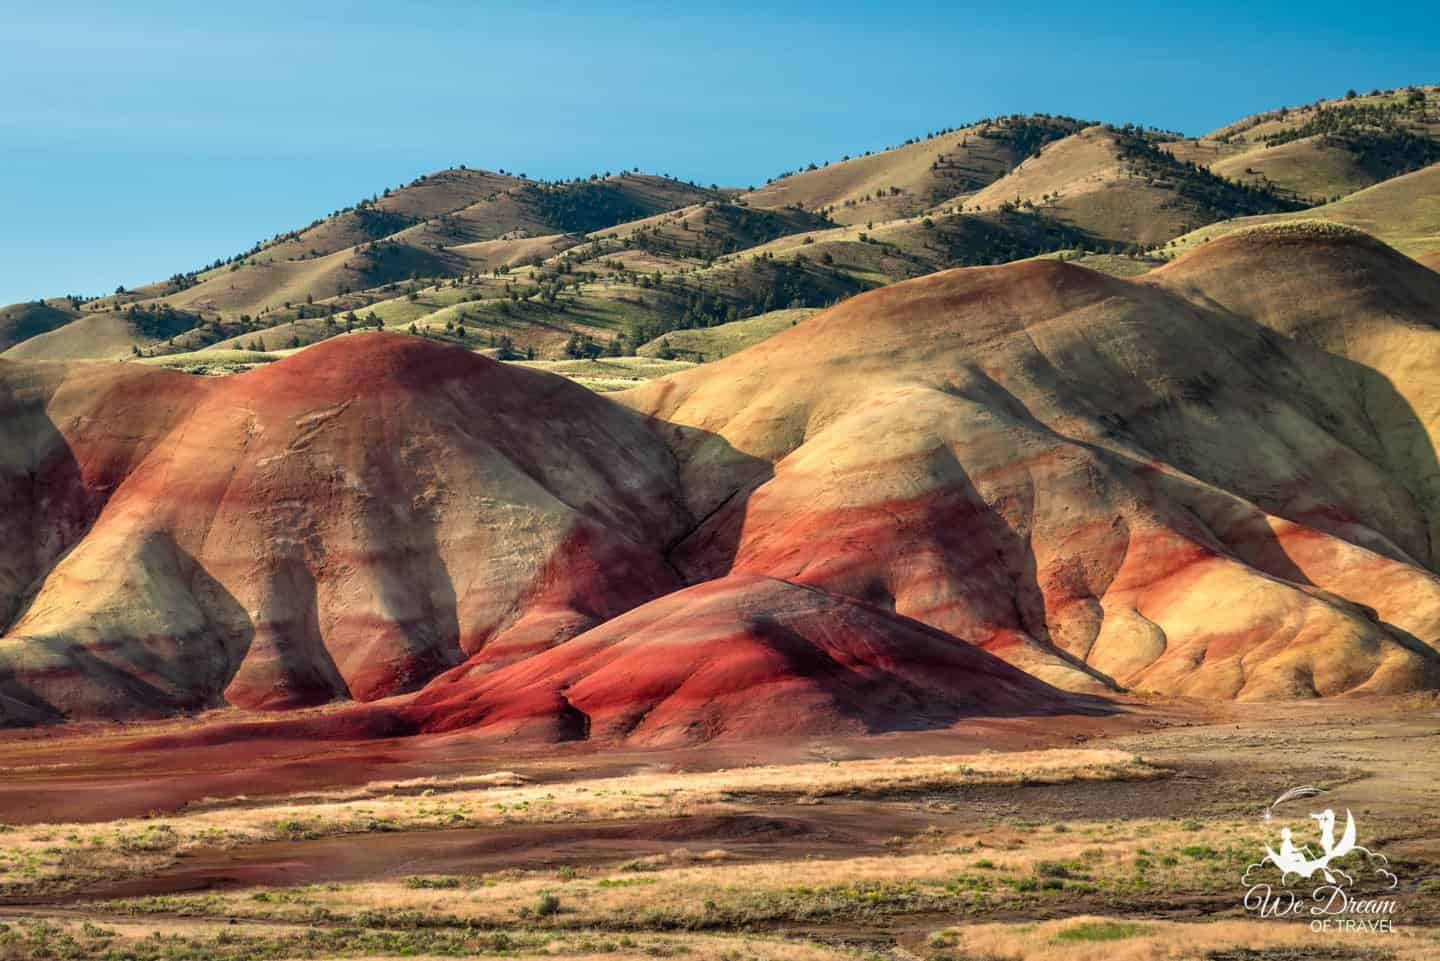 The most vibrant and interesting landscapes in the Painted Hills Unit are seen from the Painted Hills Overlook Trail.